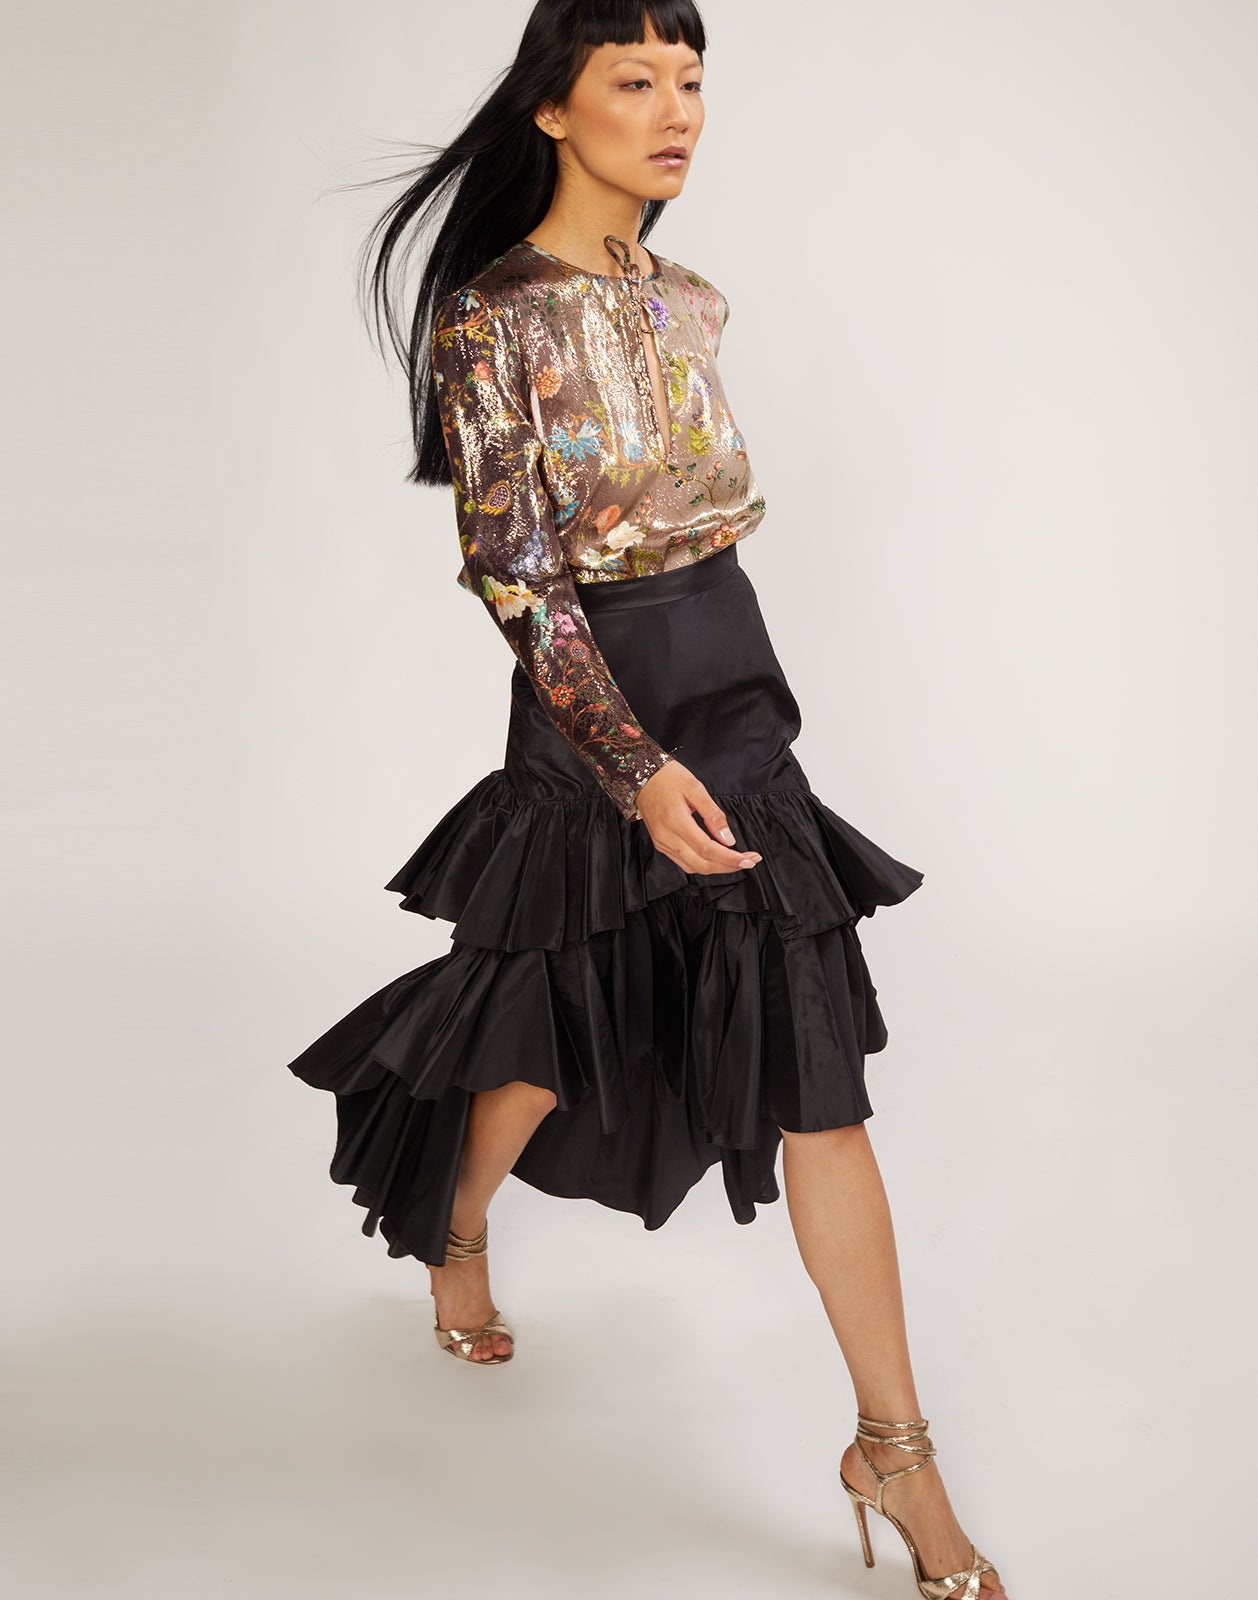 Model walking in black silk taffeta skirt with asymmetrical cascading ruffles.